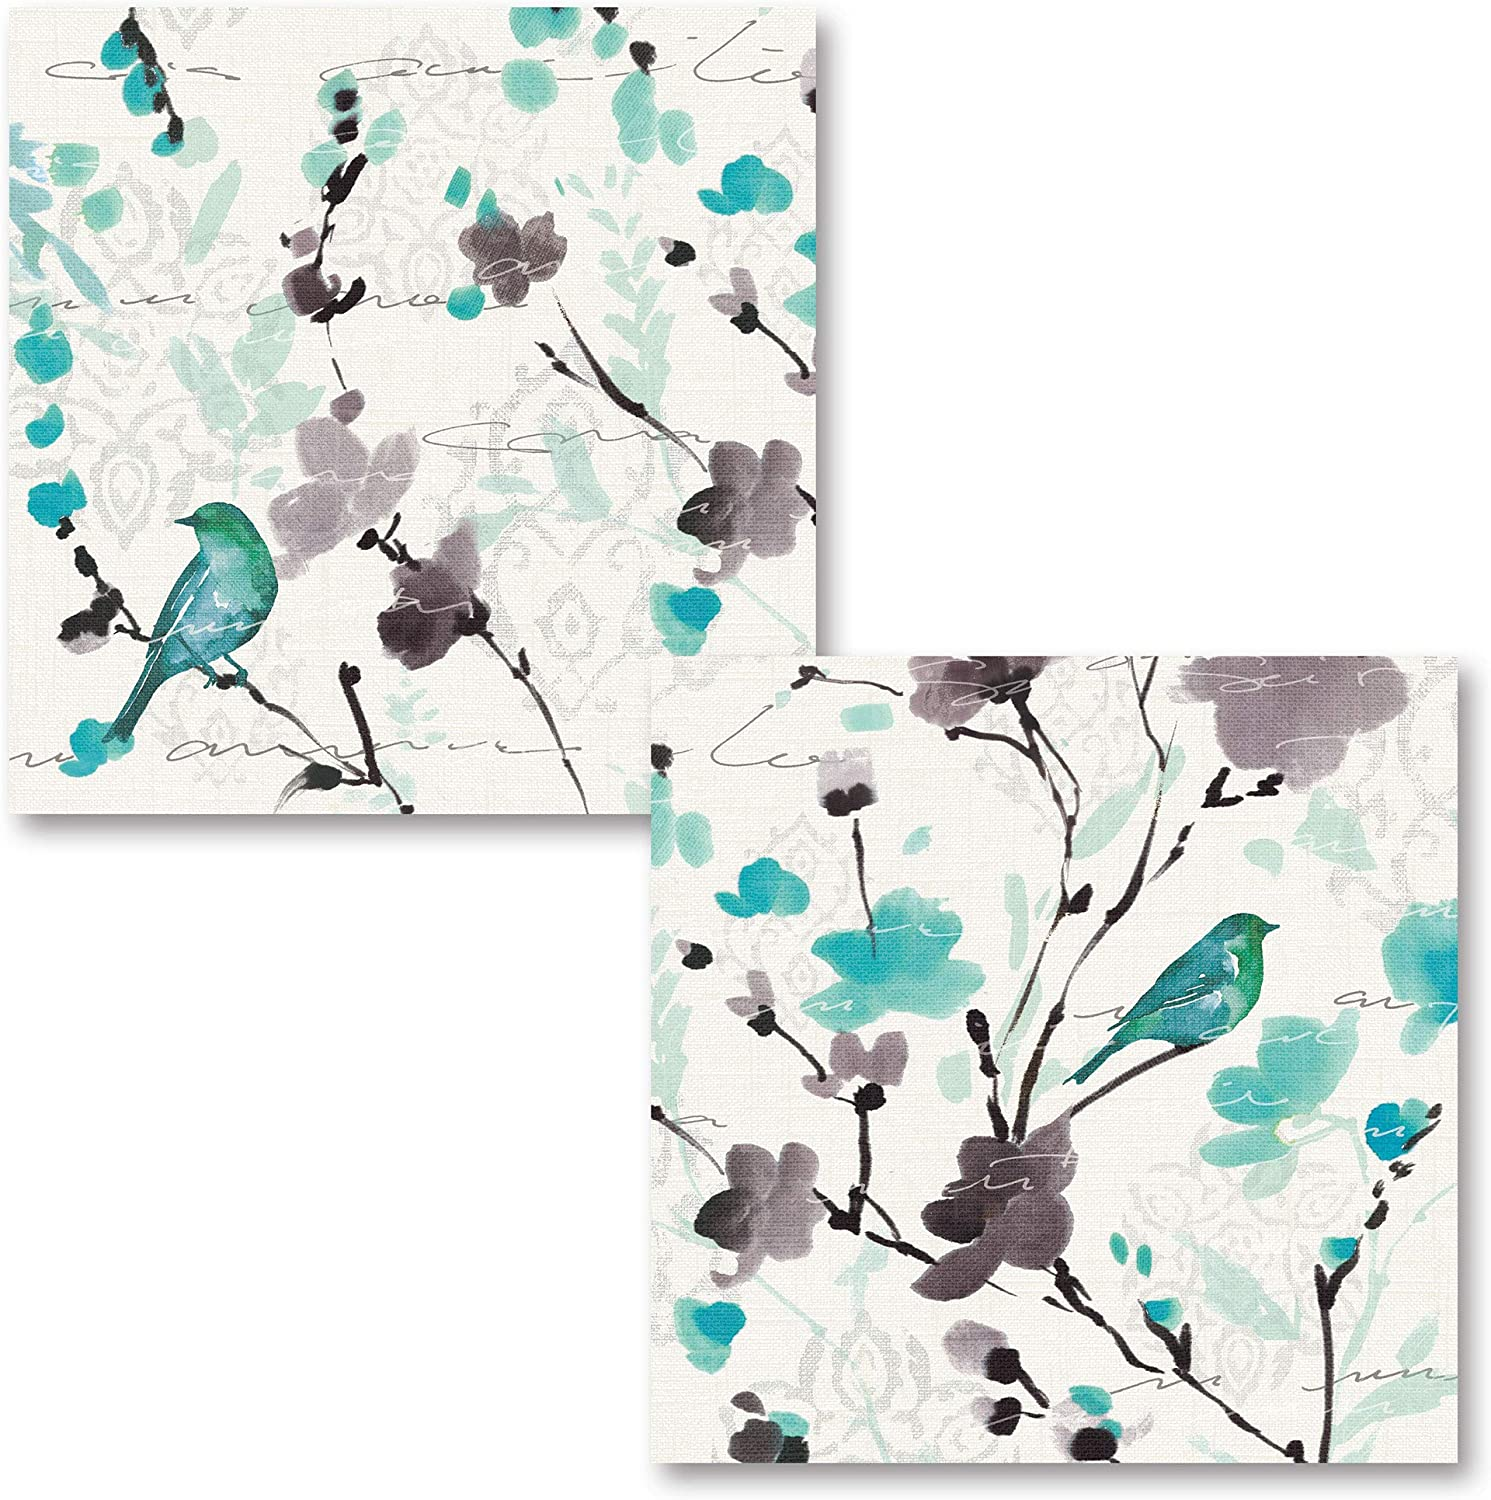 Gango Home Décor Beautiful Teal and Gray Watercolor-Style Floral and Bird Paper Poster Set by Pela; Two 12x12in Paper Poster Prints